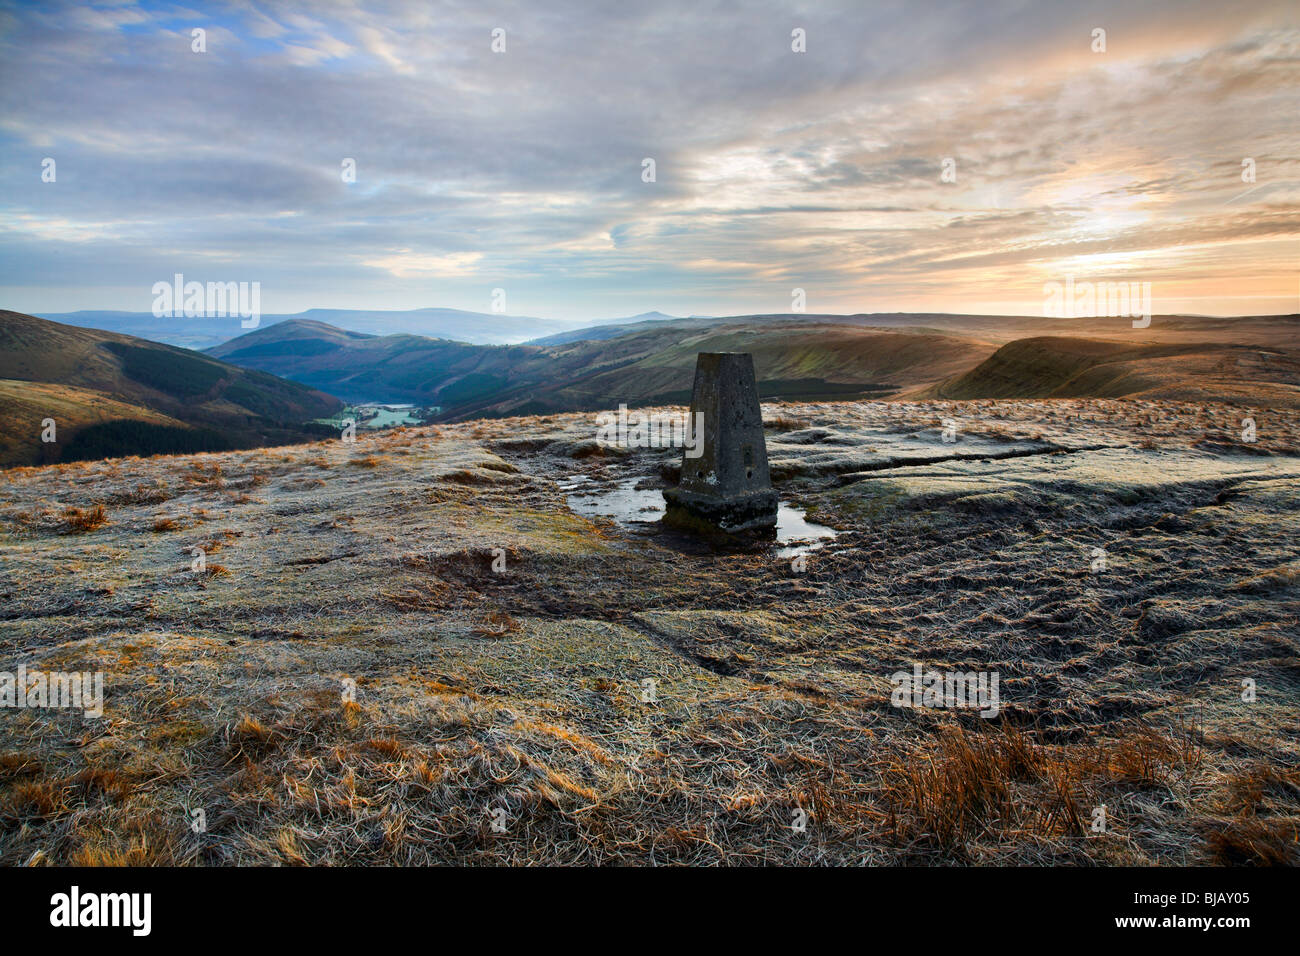 Trig point at the top of Pant y Creigiau mountain in the Brecon Beacons National Park. - Stock Image